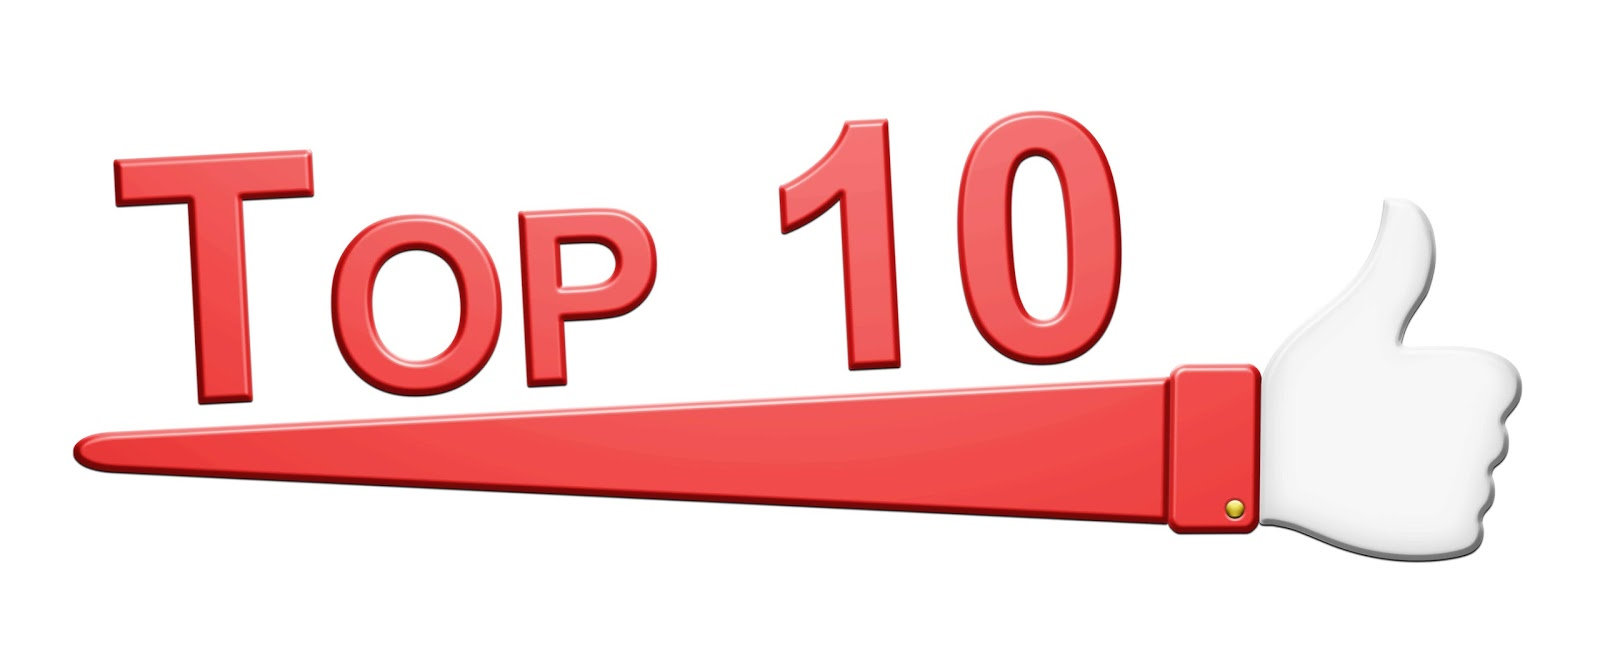 Top 10 naked lovers